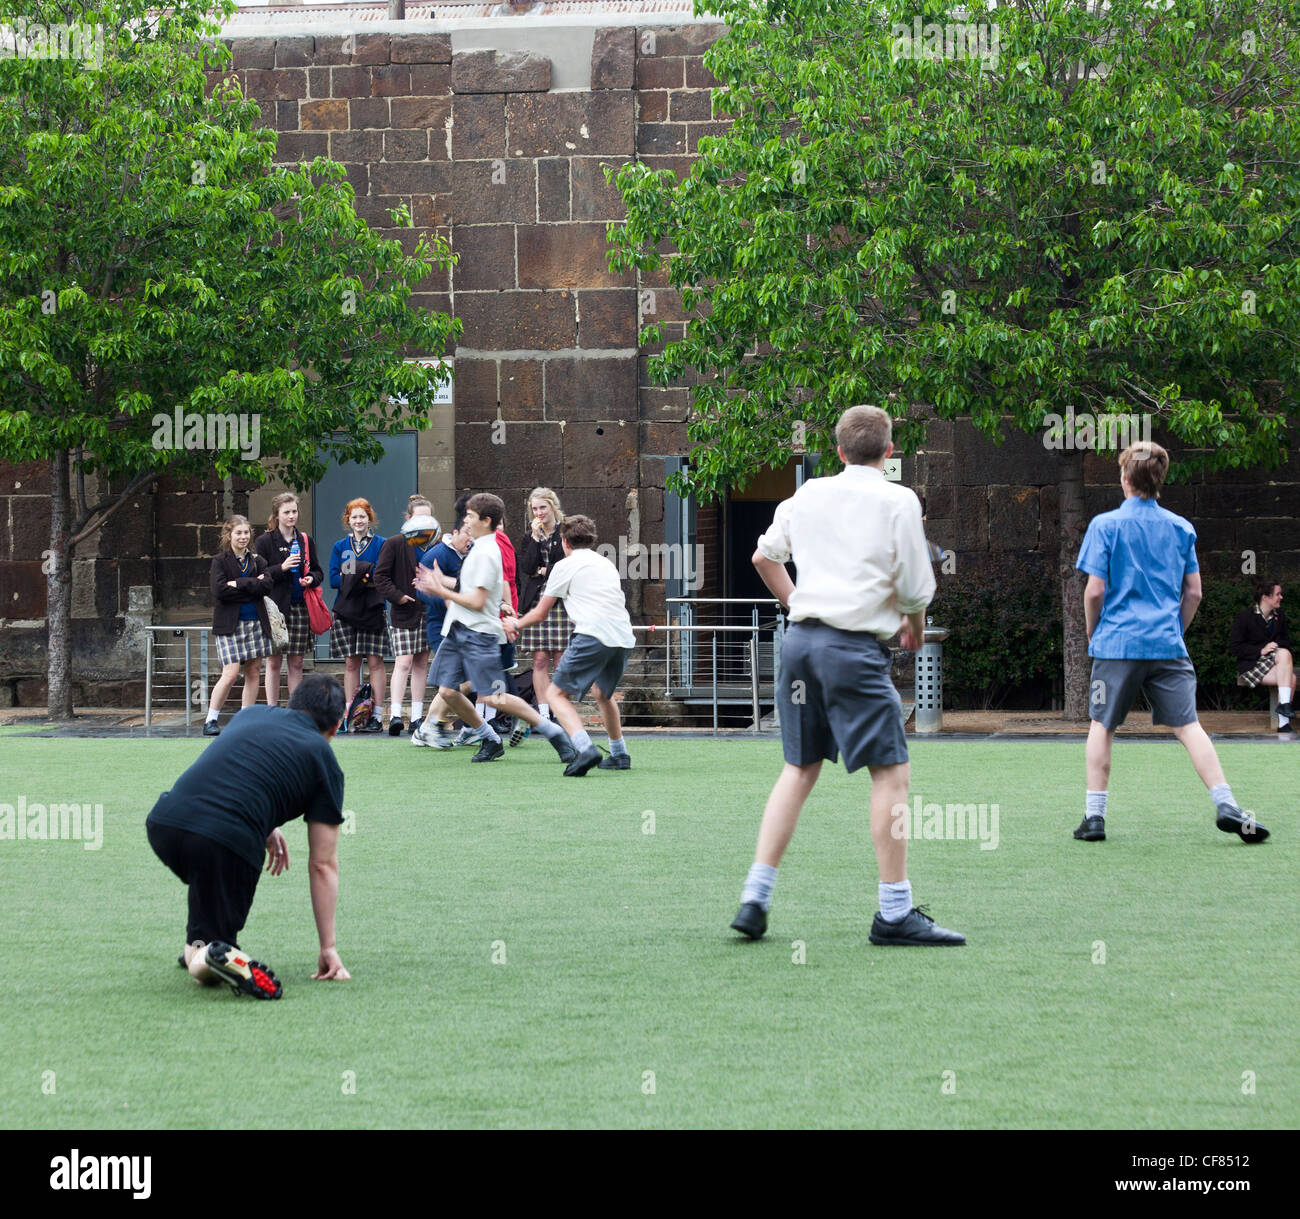 schoolboys playing touch rugby watched by admiring schoolgirls, Melbourne, Australia - Stock Image